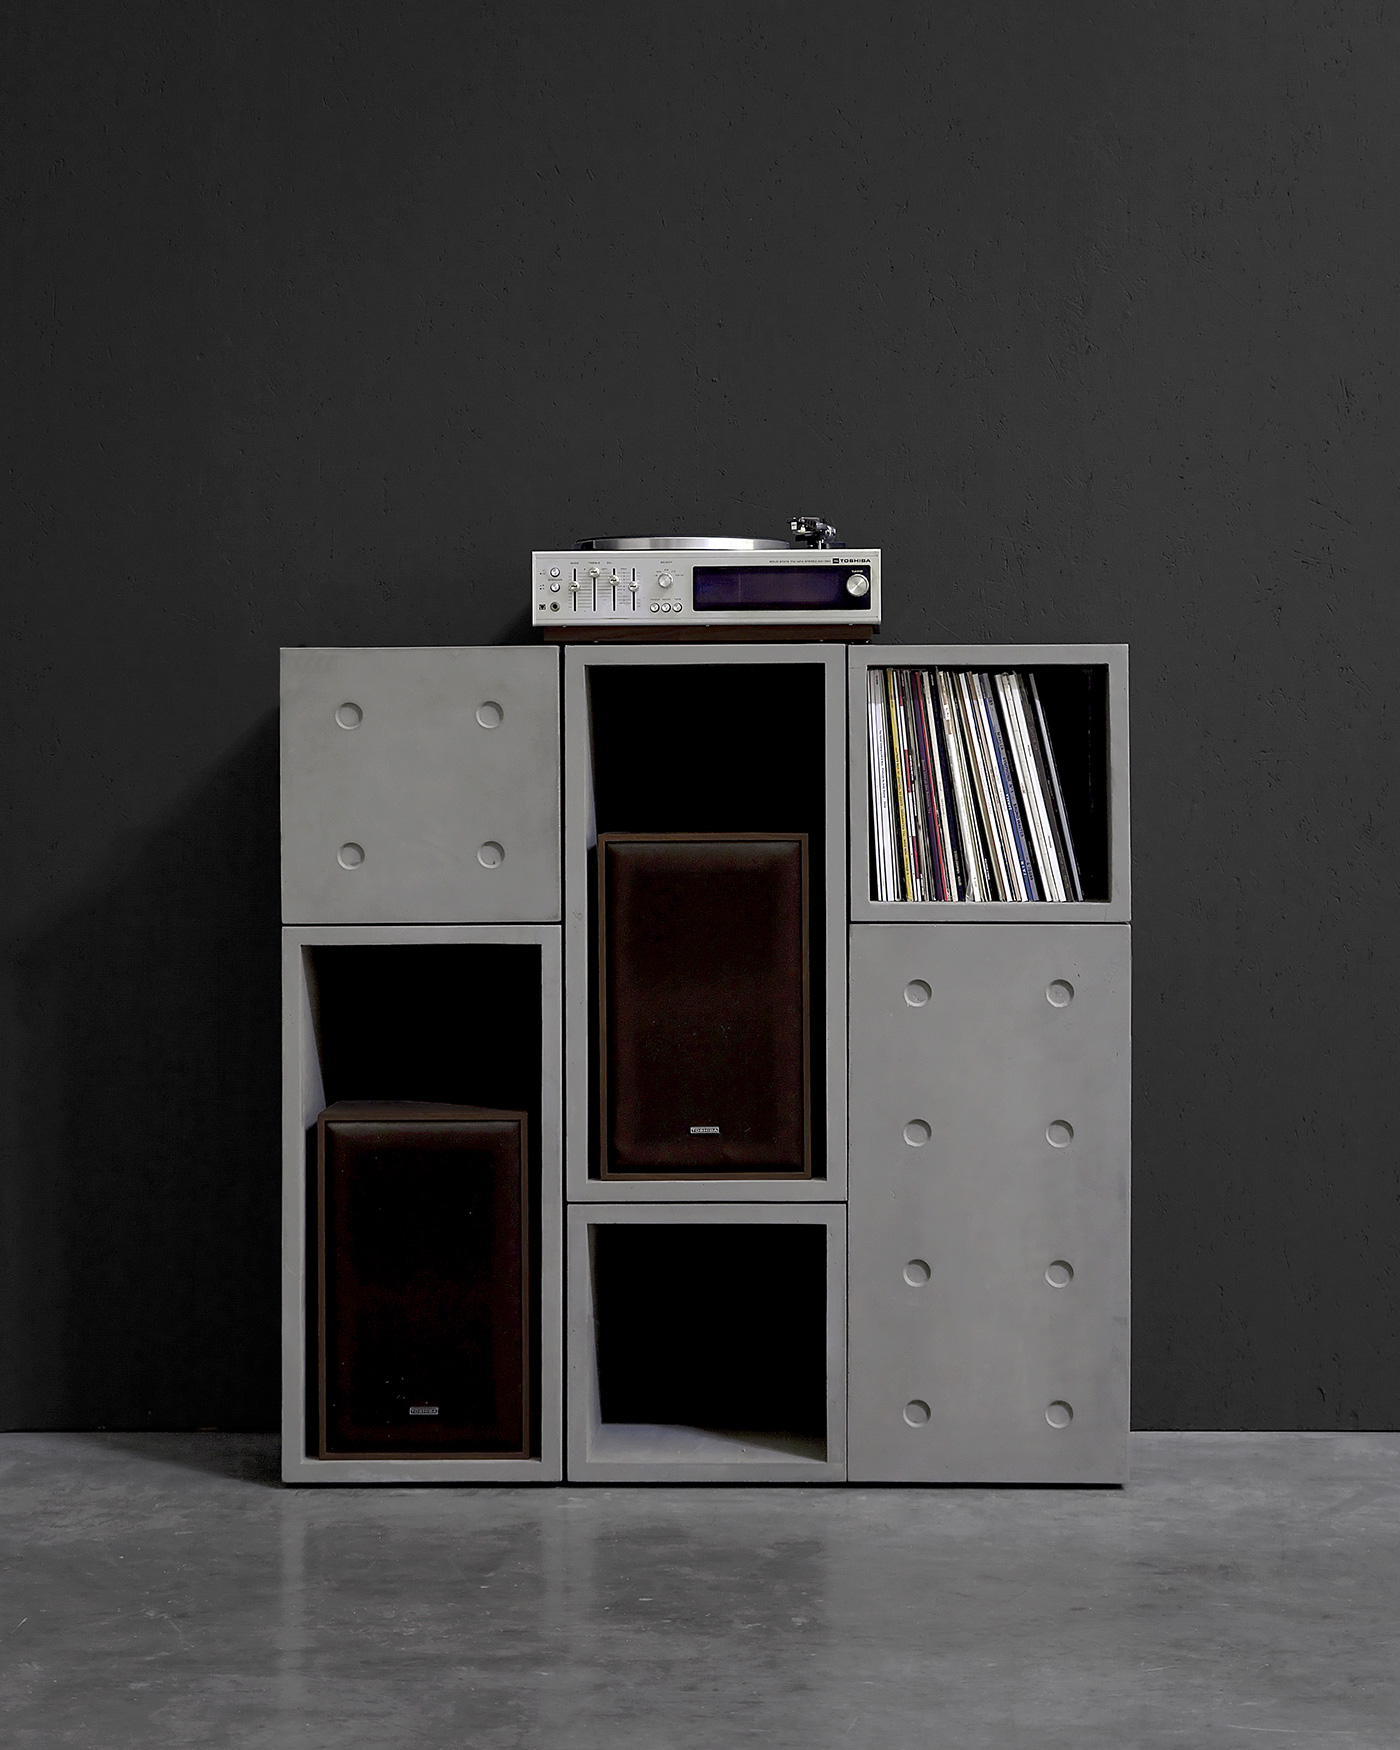 Dice modular concrete storage system with record player